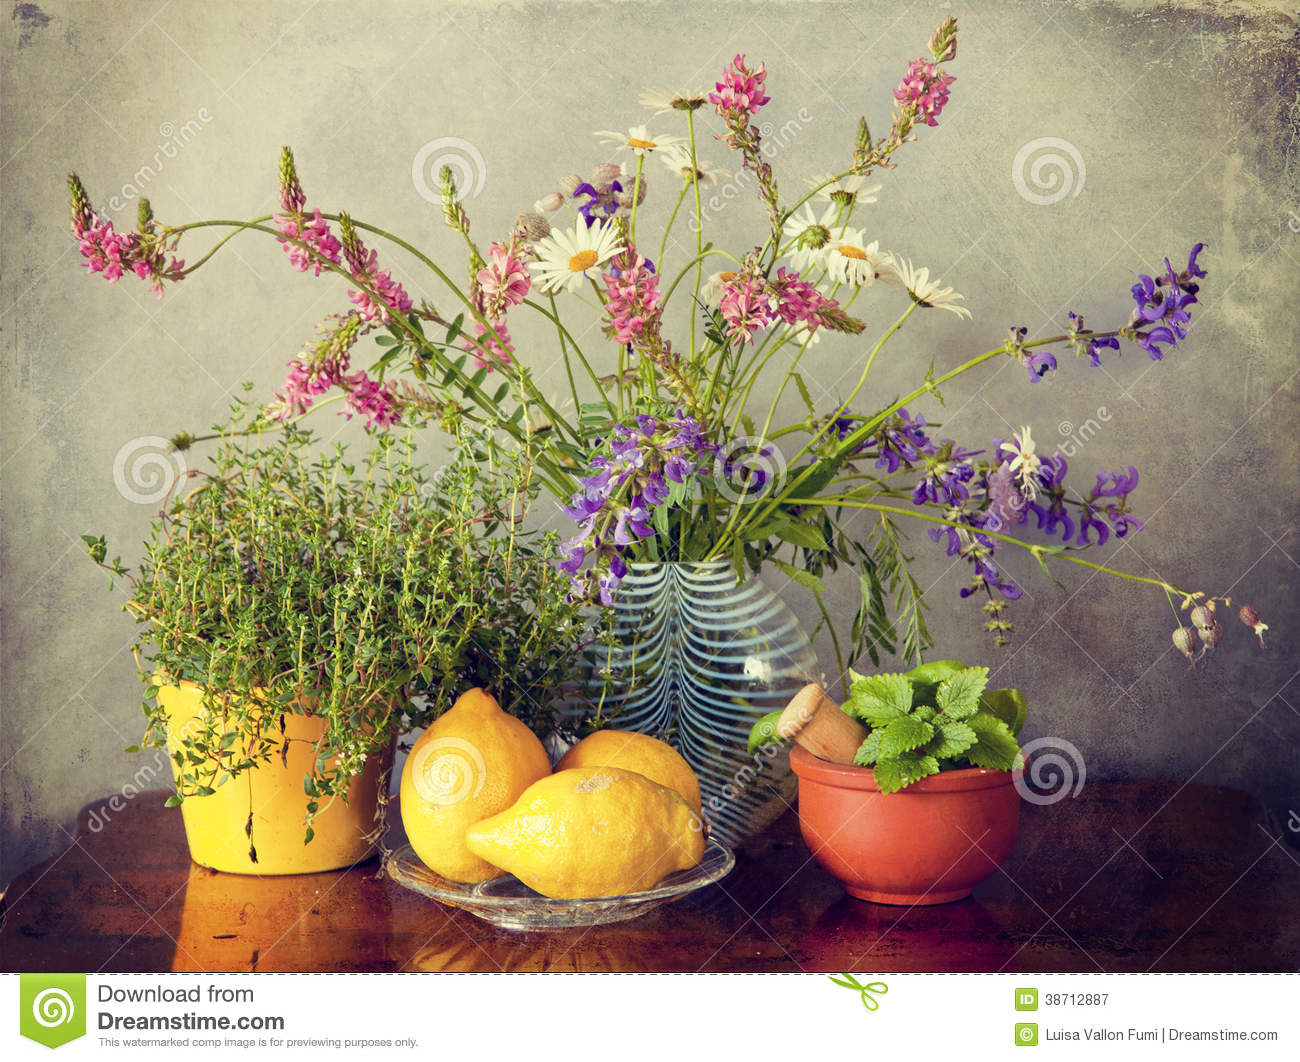 Beautiful pink flowers in the garden stock photography image - Wild Flowers In Vase Herbs And Lemon Fruits Royalty Free